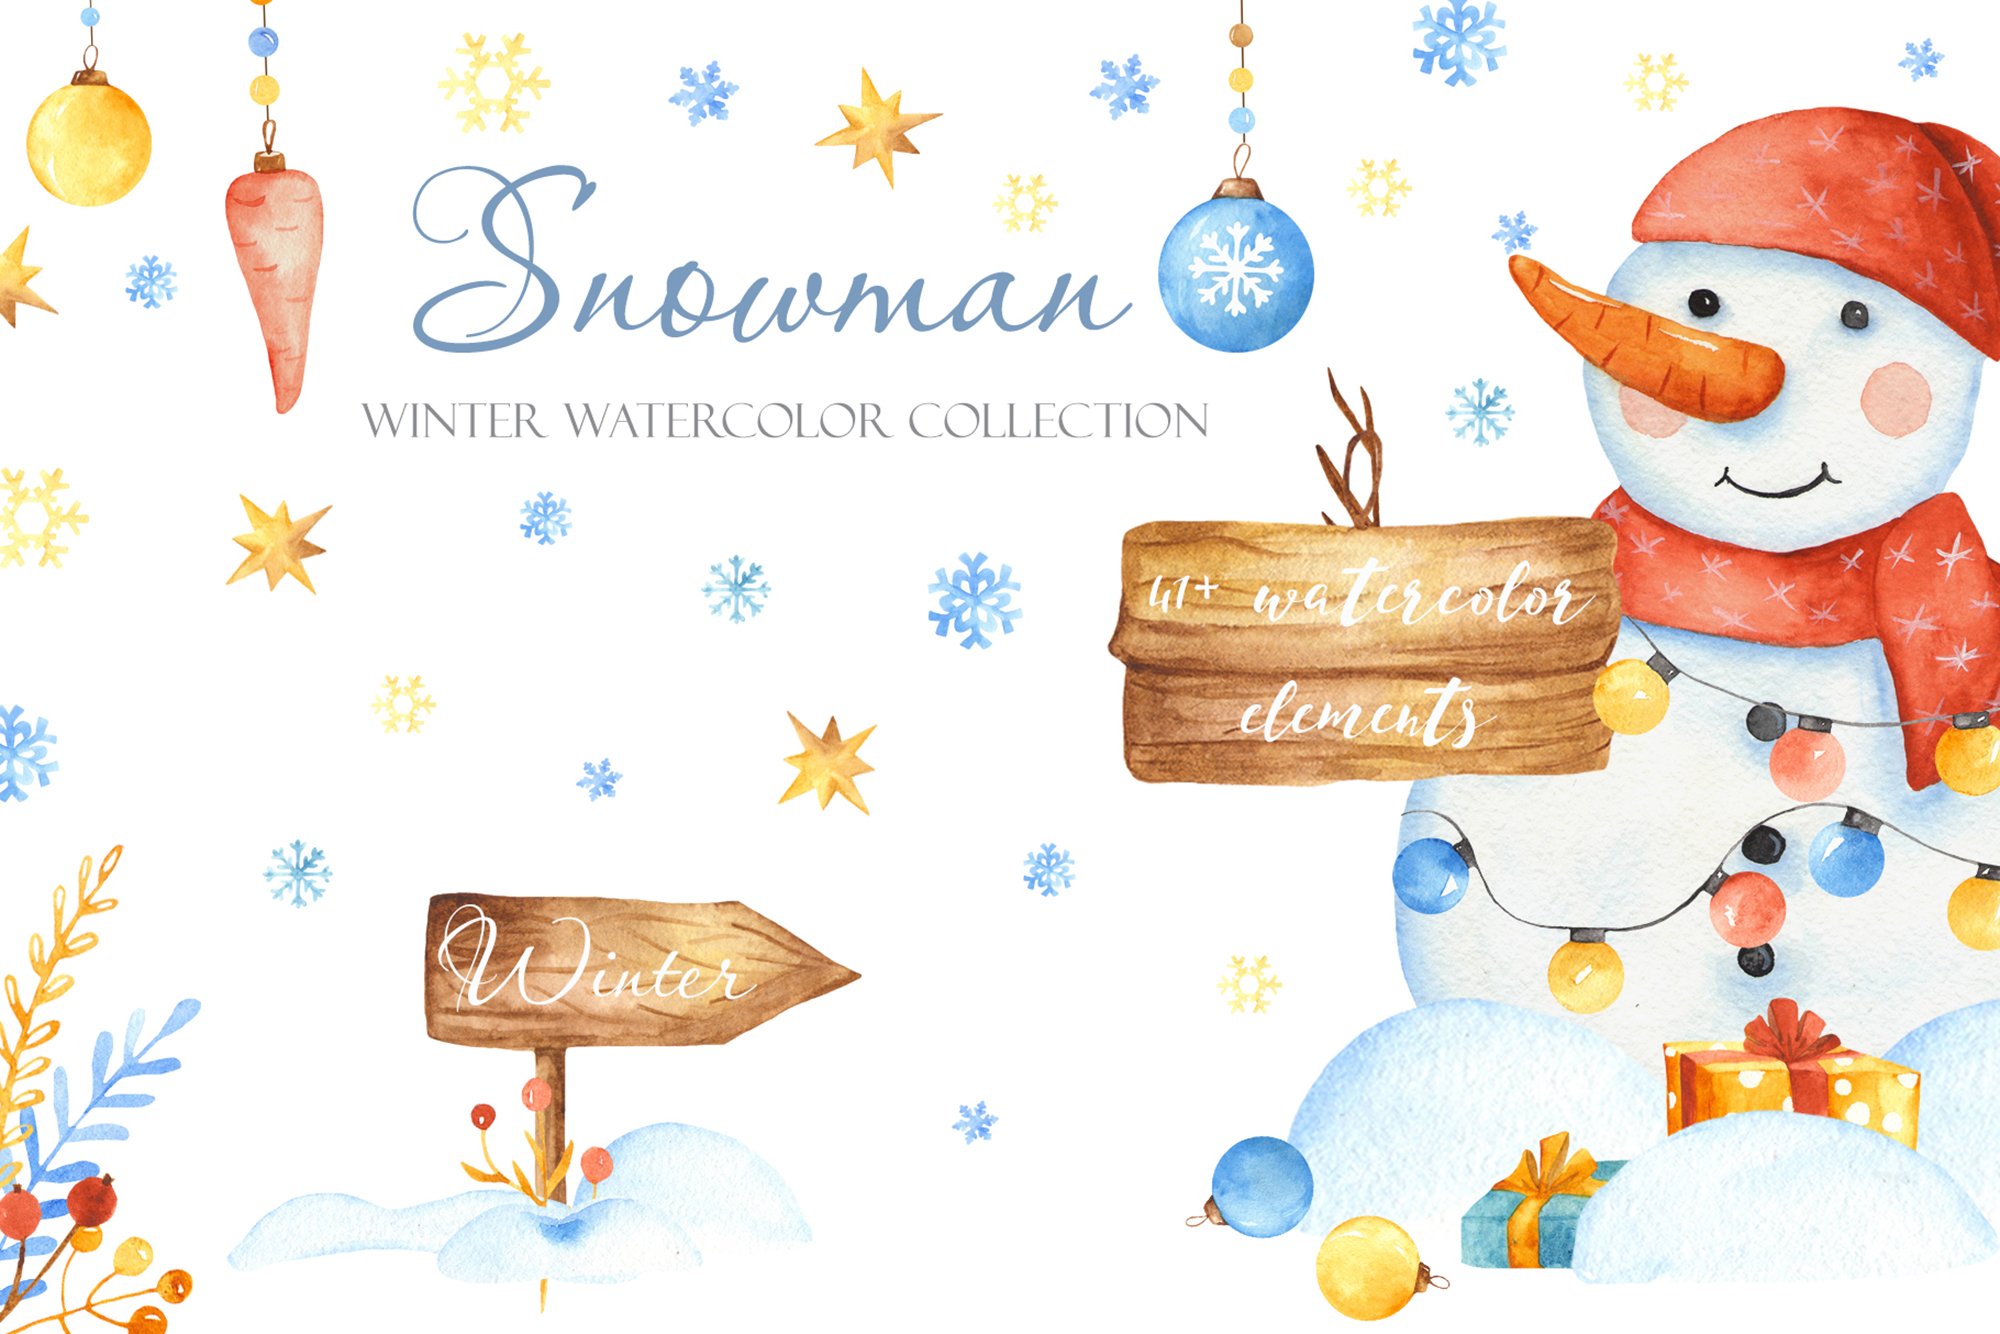 Christmas cute snowman watercolor clipart Winter collection.